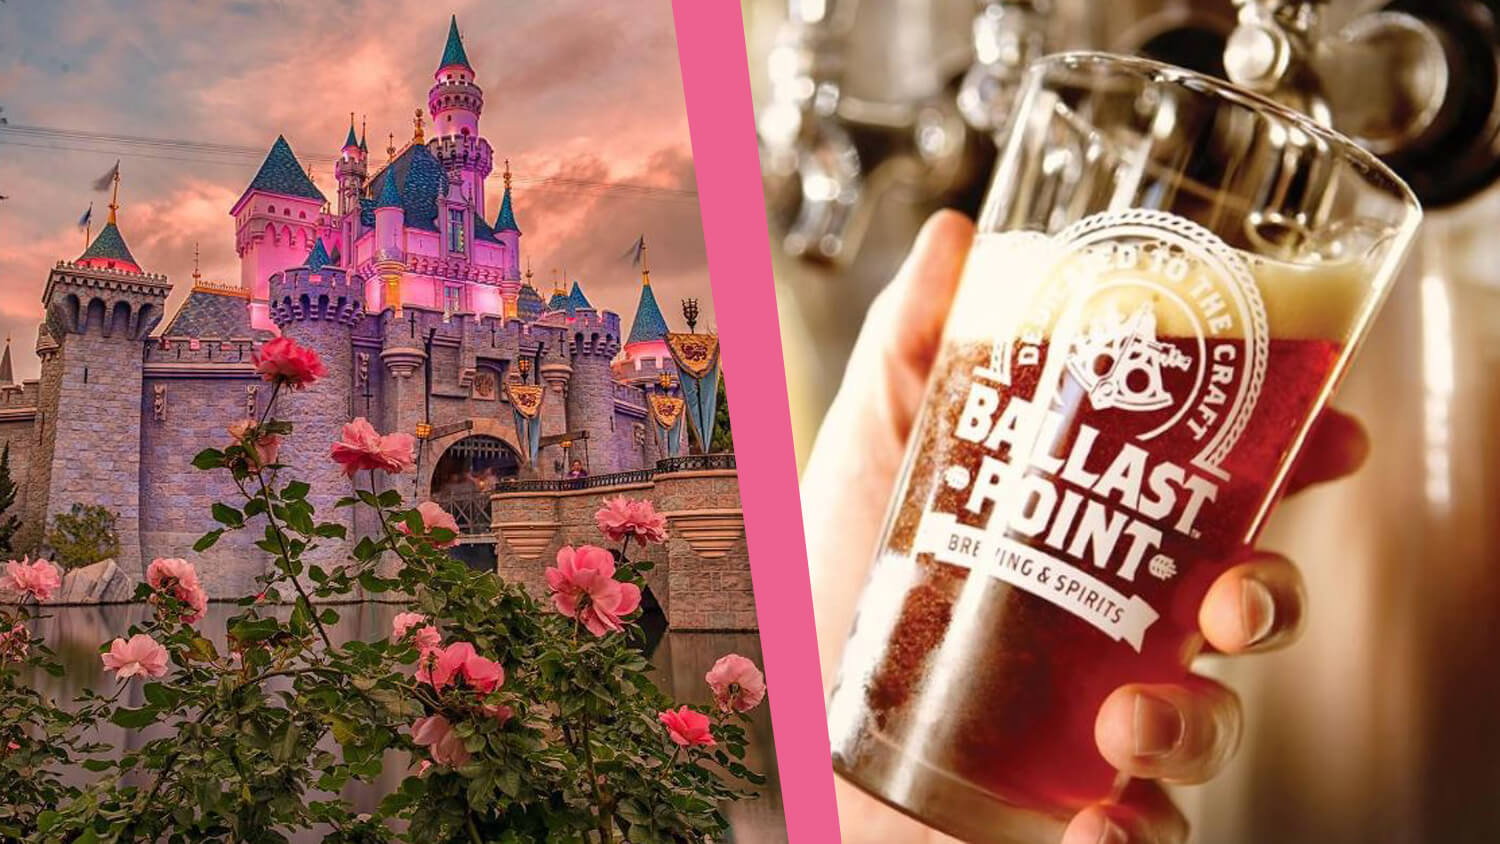 Disneyland Now Has a Vegan Craft Brewery